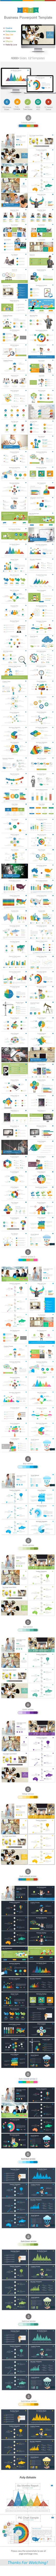 Effective Business Powerpoint Template #design #slides Download: http://graphicriver.net/item/effective-business-powerpoint-template/12166188?ref=ksioks